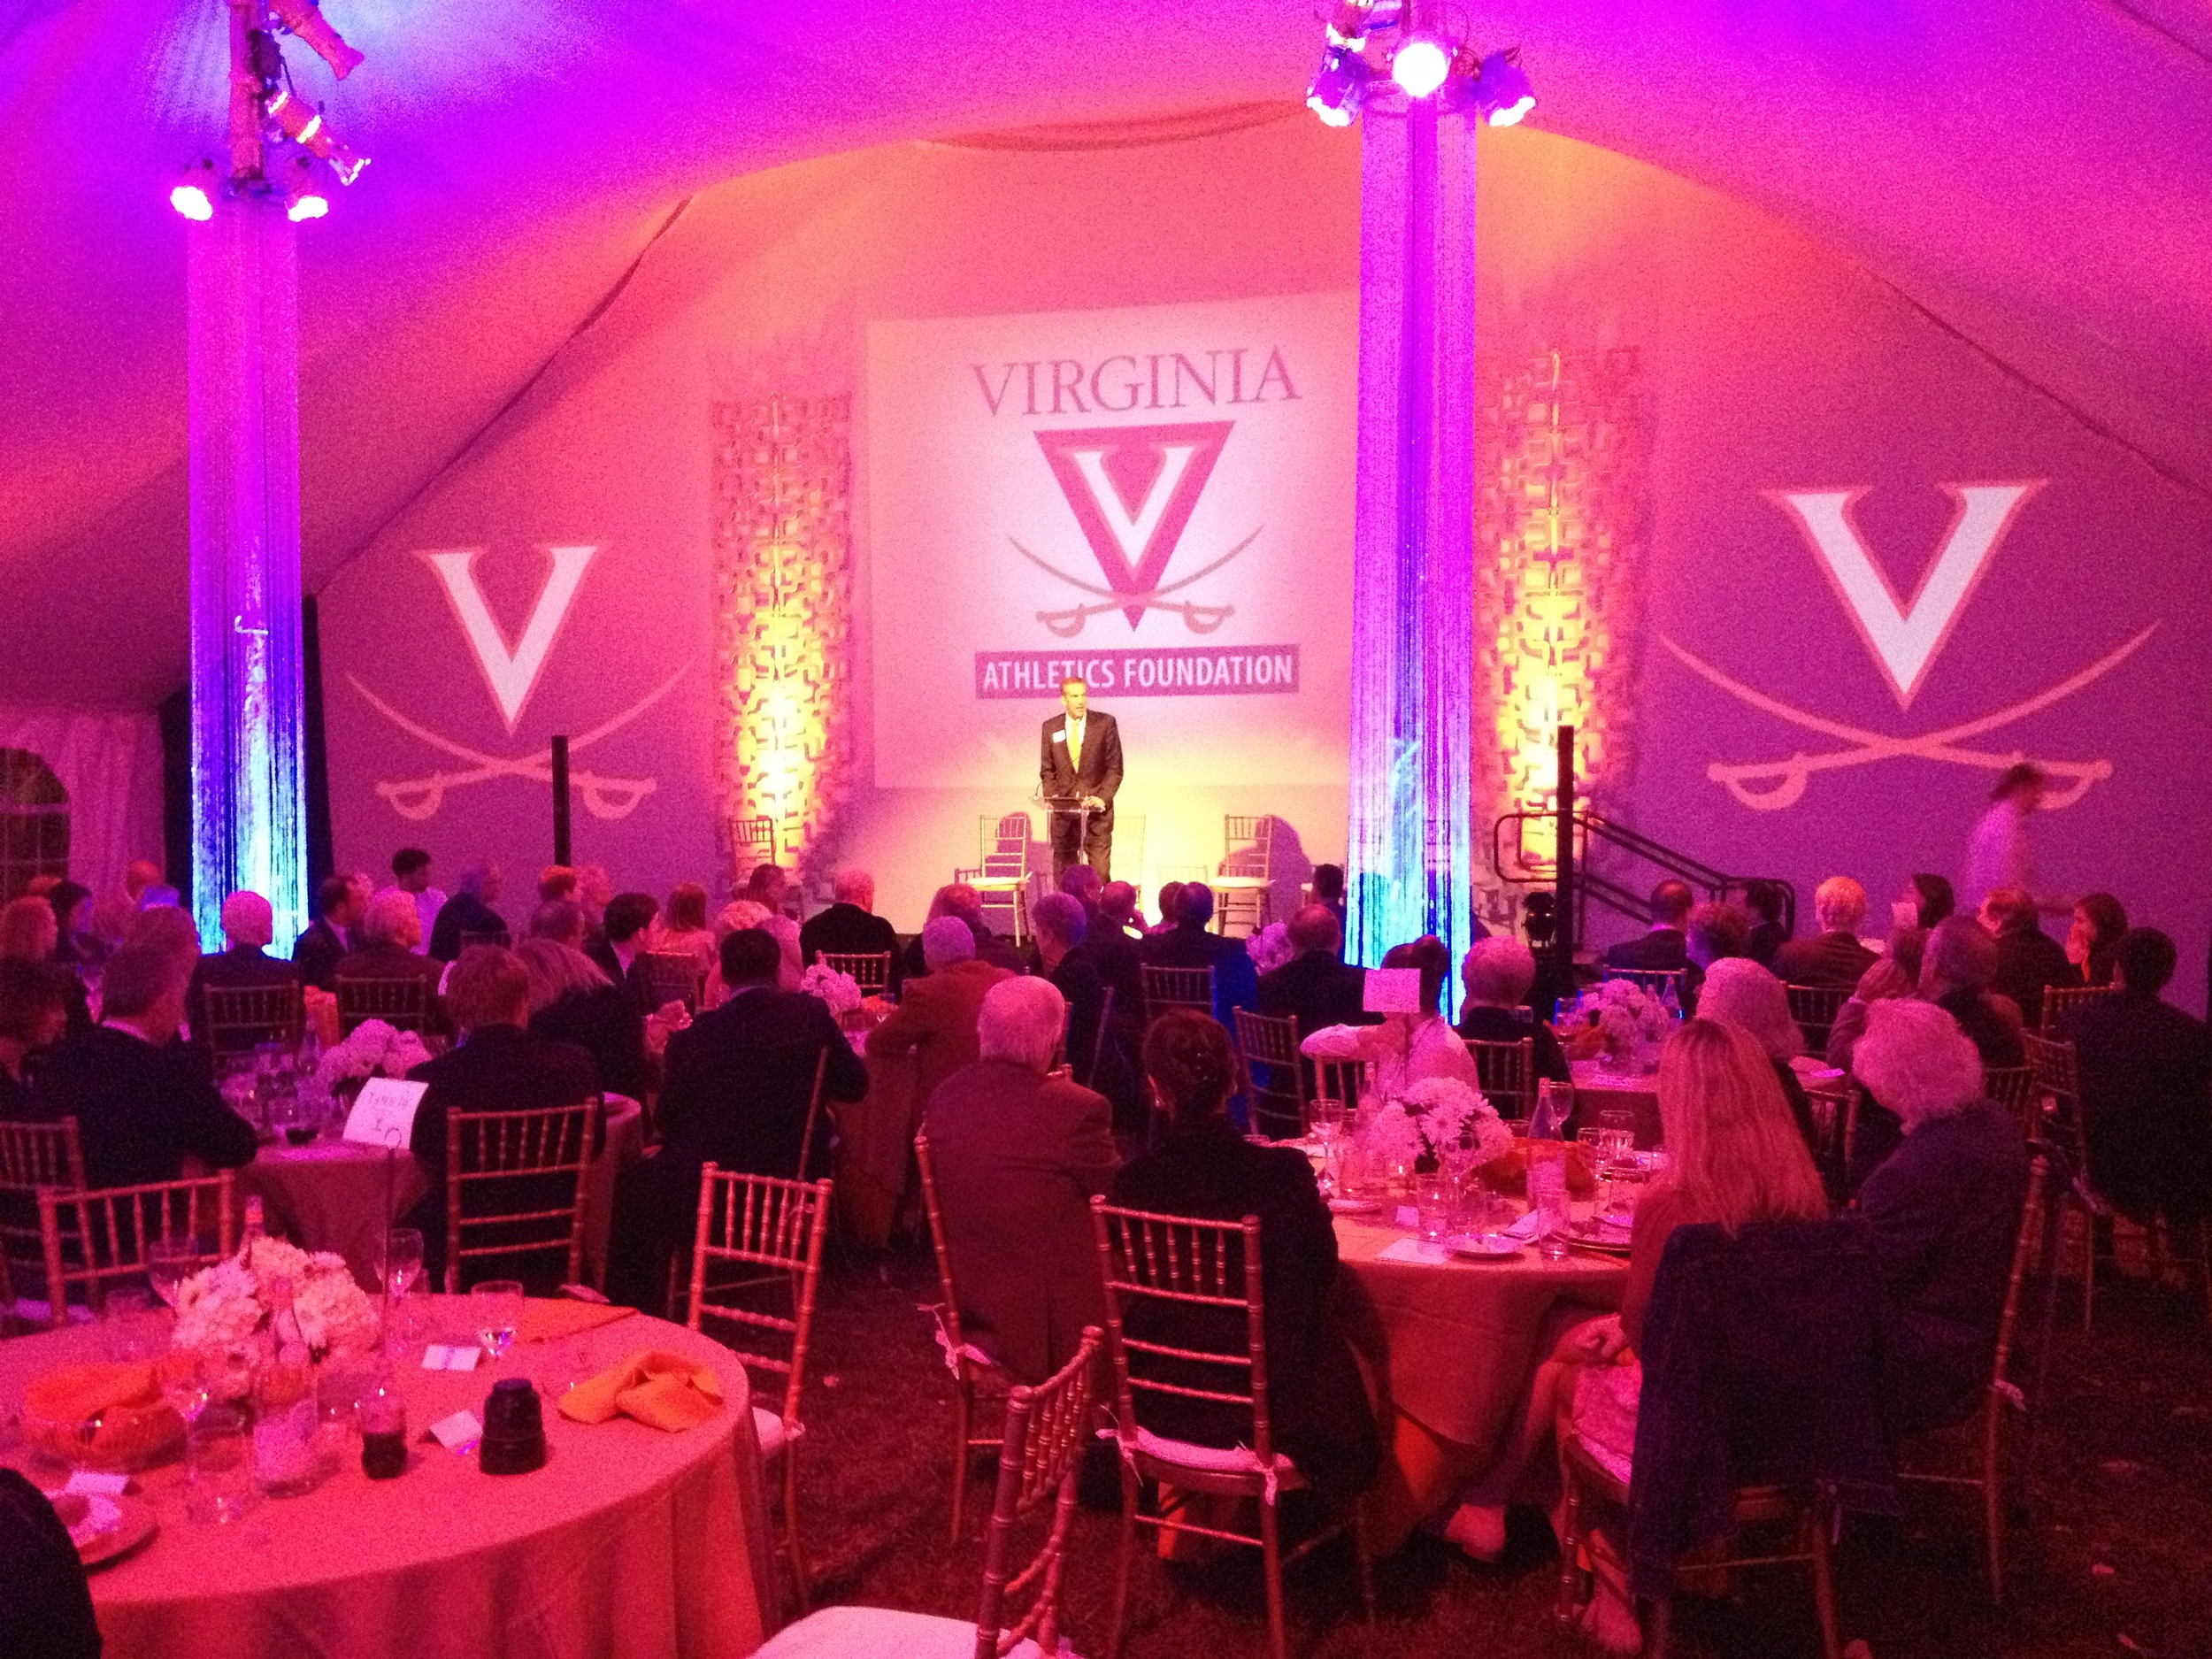 Celebration of Champions UVA - Rental and Staging - The AV Company